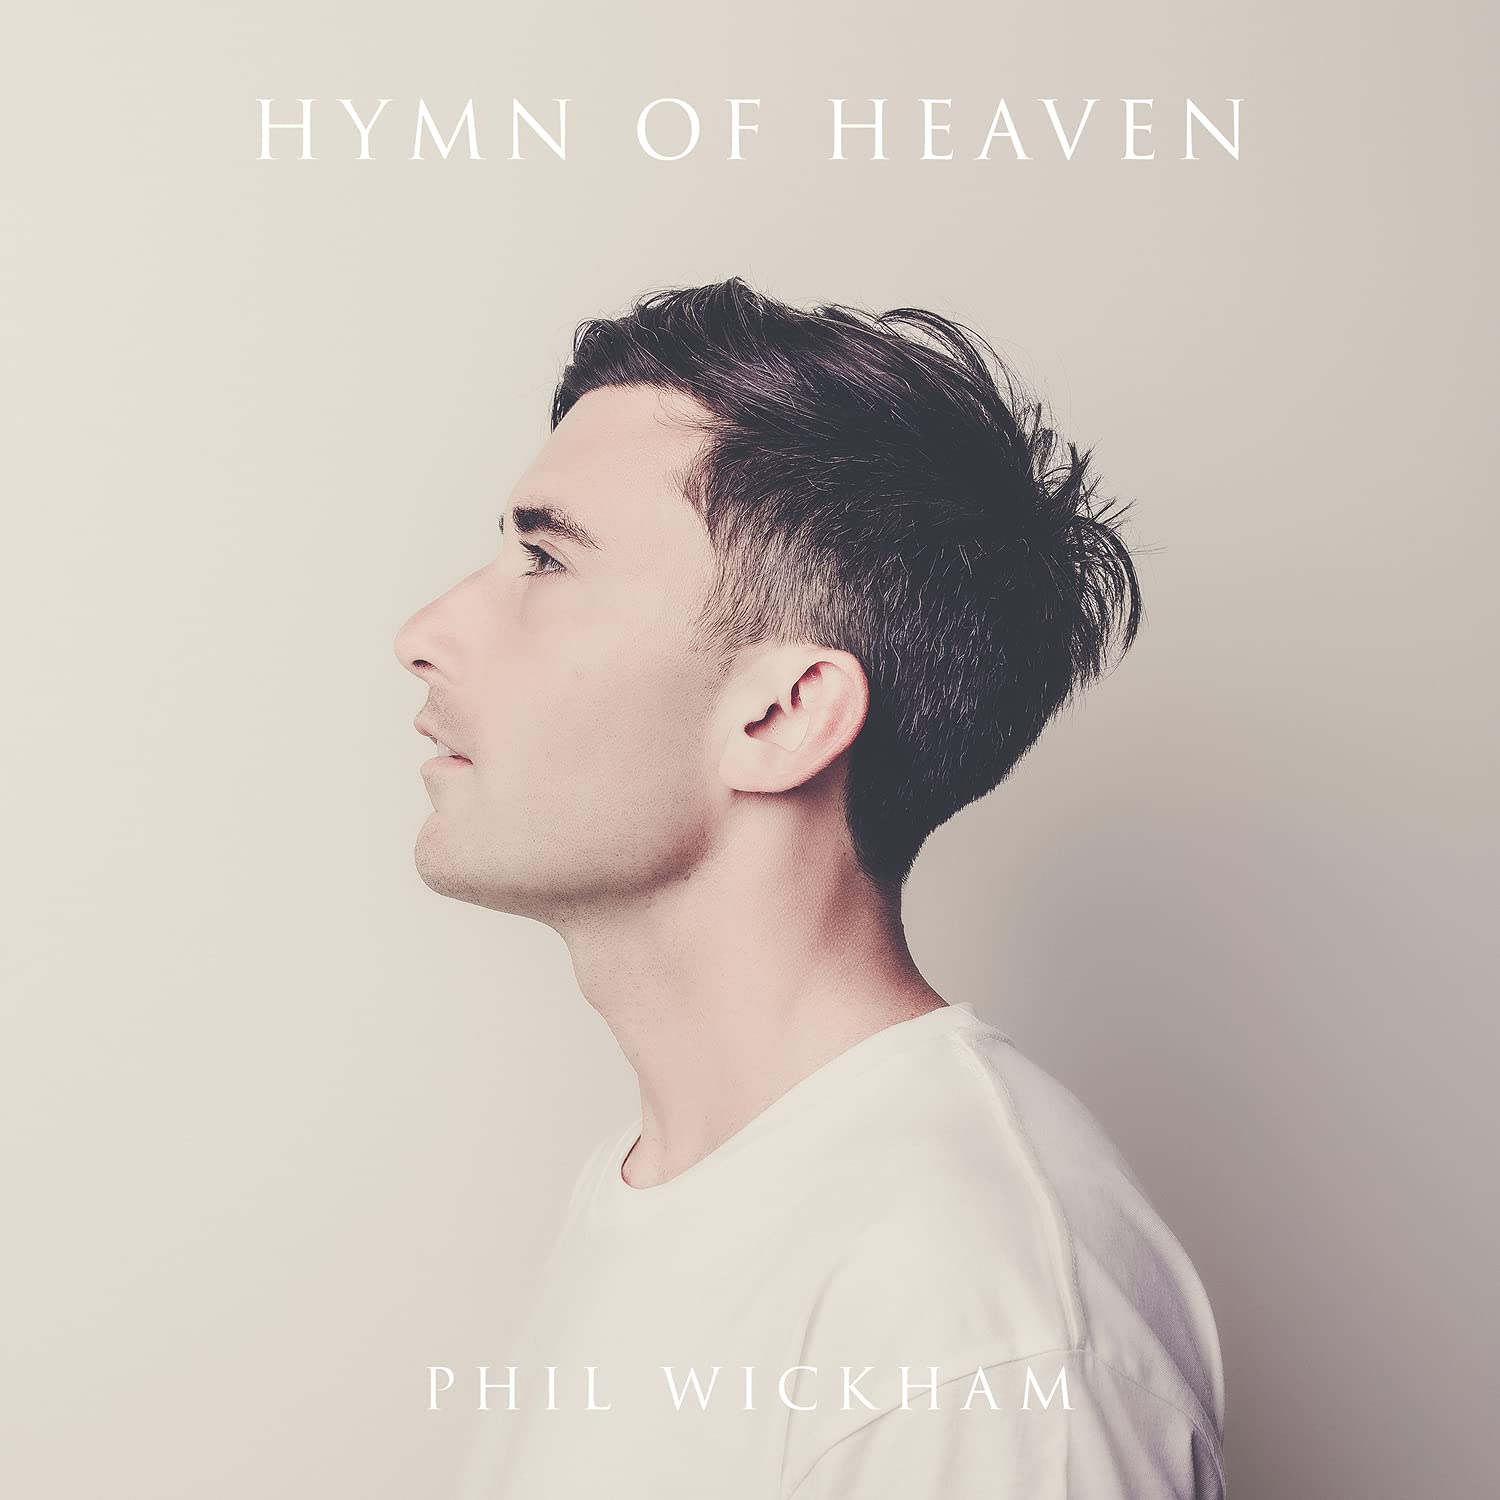 House of the Lord - Hymn of Heaven